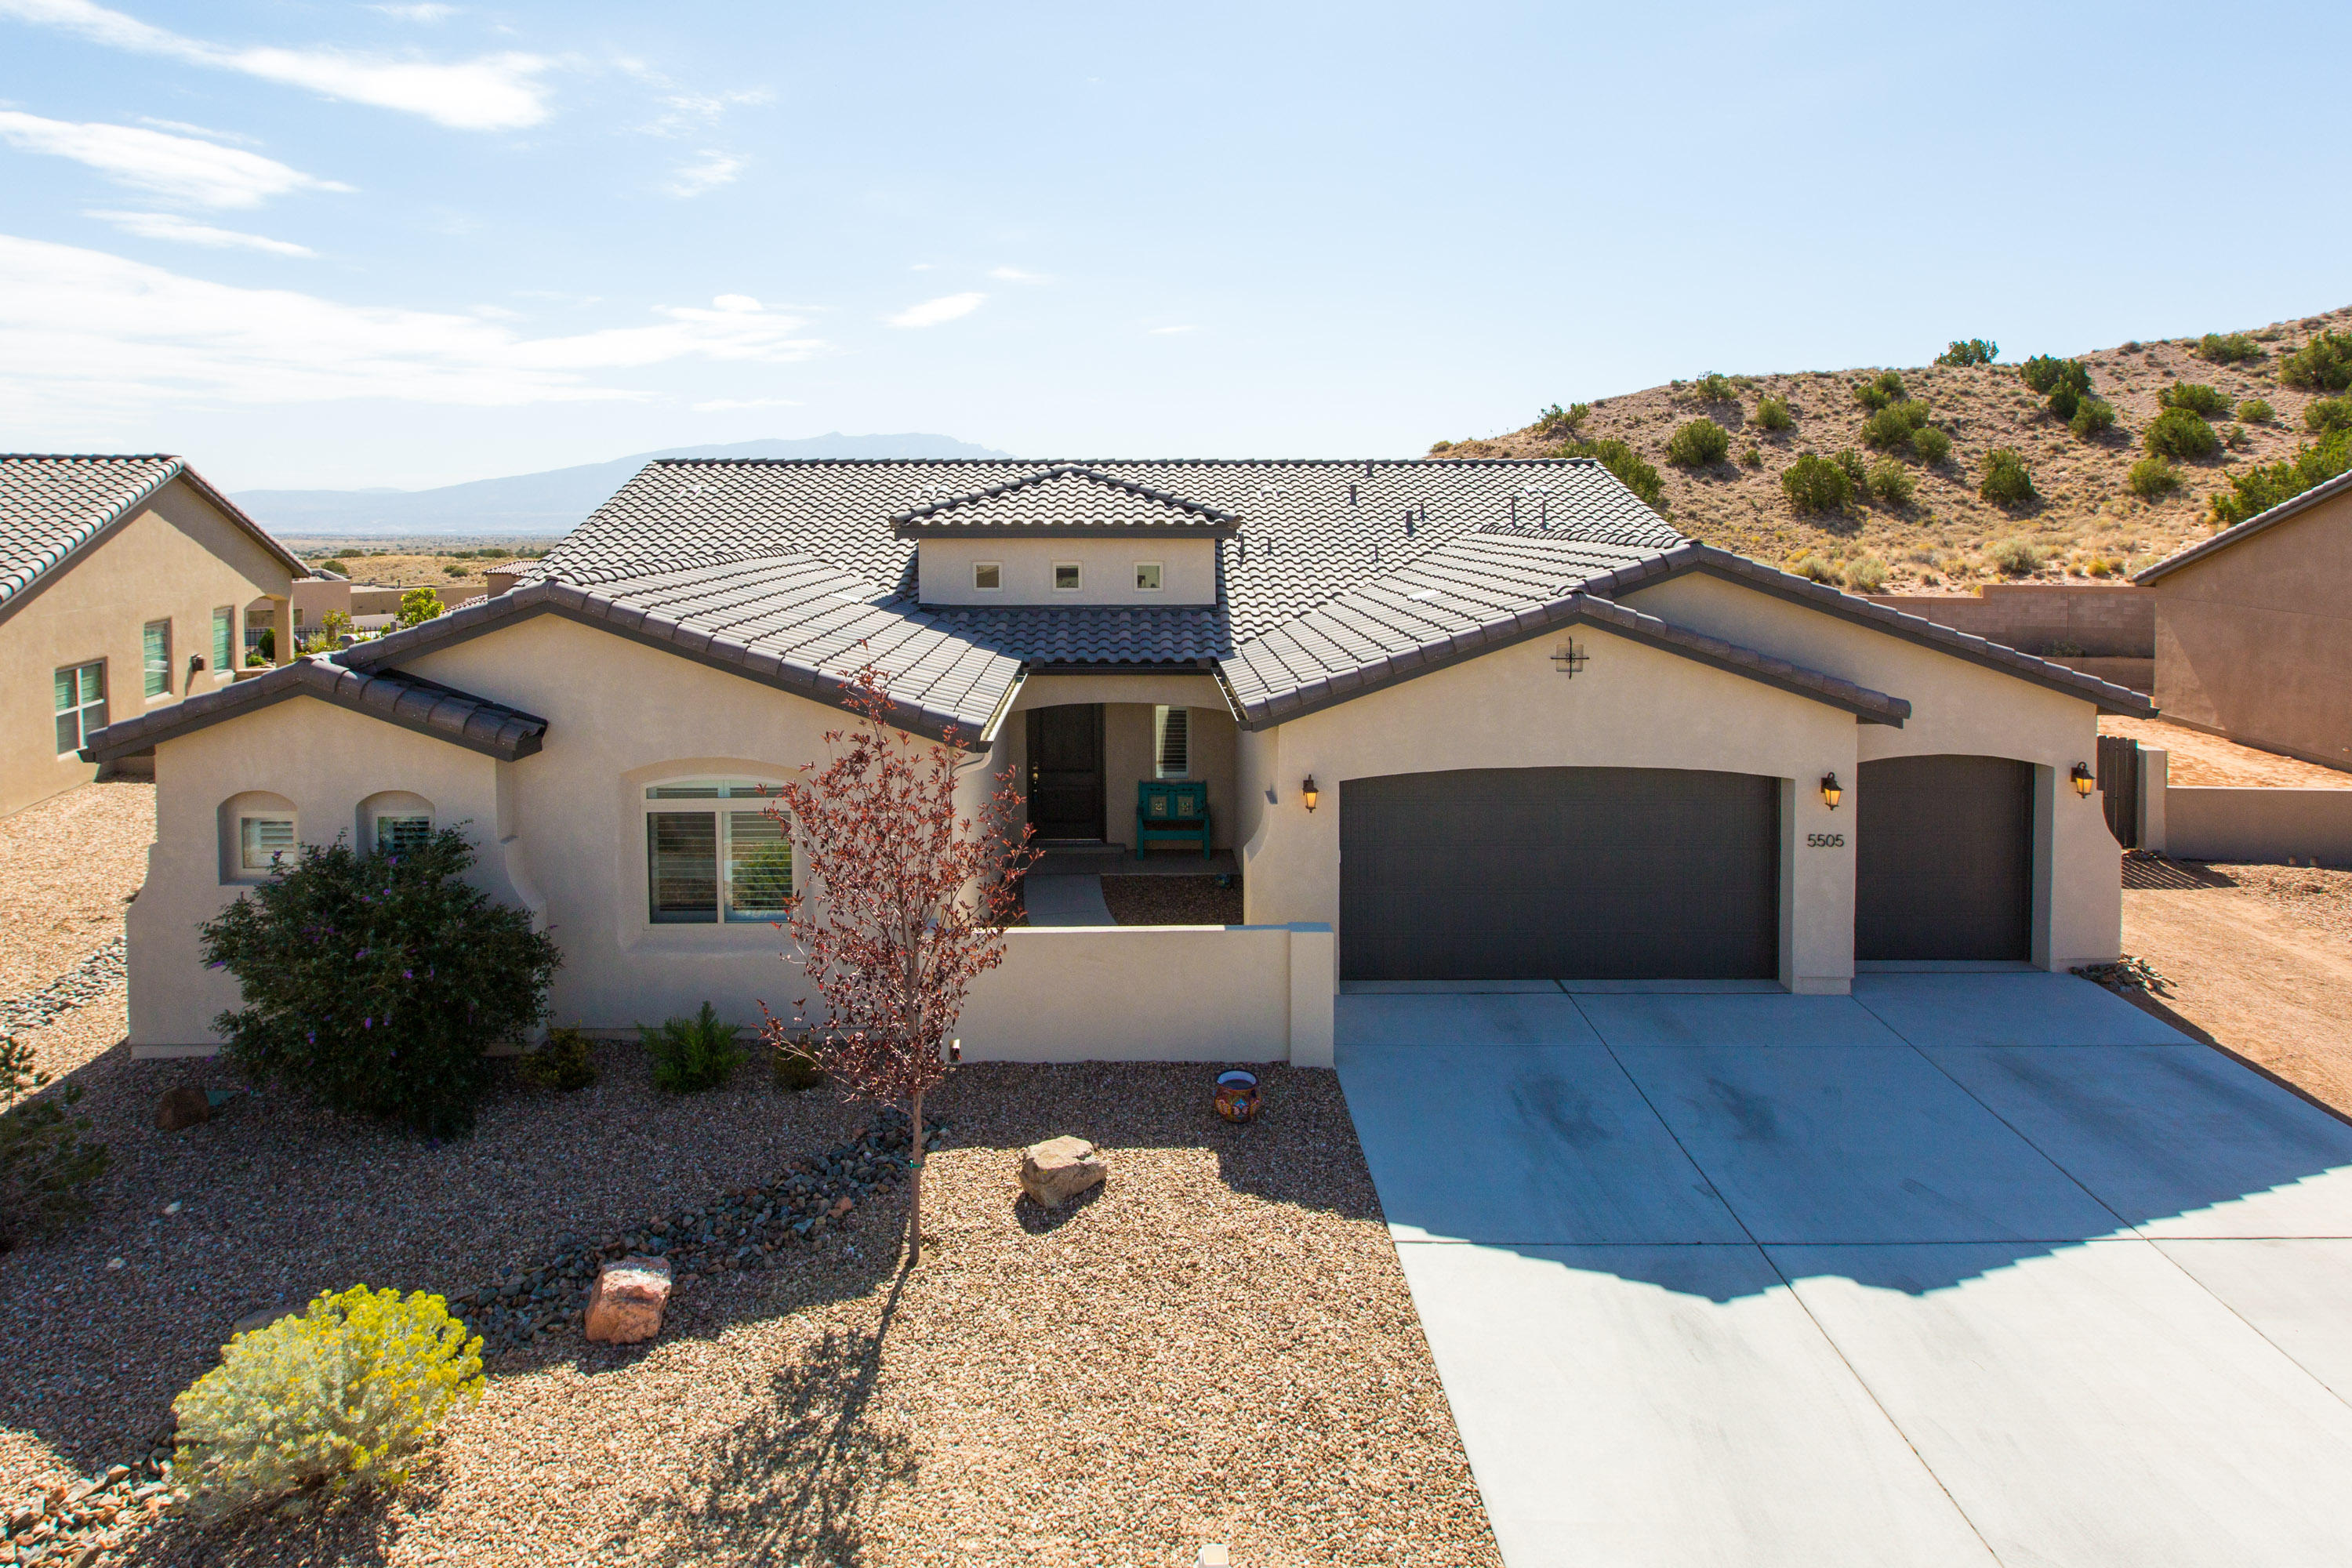 You will be amazed inside and out by this stunning Tiffany open floorplan by Abrazo with Silver Level Green Certification.  Almost new with all the upgrades and custom add-ons already done for you. Just a few include: upgraded appliances (Wolf commercial gas stove), flooring, light fixtures, large stainless farmhouse sink, upgraded cabinets with wine rack, upgraded quartz countertops, master bath has split sinks, dual head walk-in shower, garden tub, pallet wood wall, extra large walk-in closet connected to laundry room, 2 stunning custom barndoors. Backyard fire pit, built in grill, play area, optional custom playhouse, pergola and brick pad area with 220 ready for your hot tub, all professionally landscaped with side yard RV access. Tranquility awaits you in this backyard.